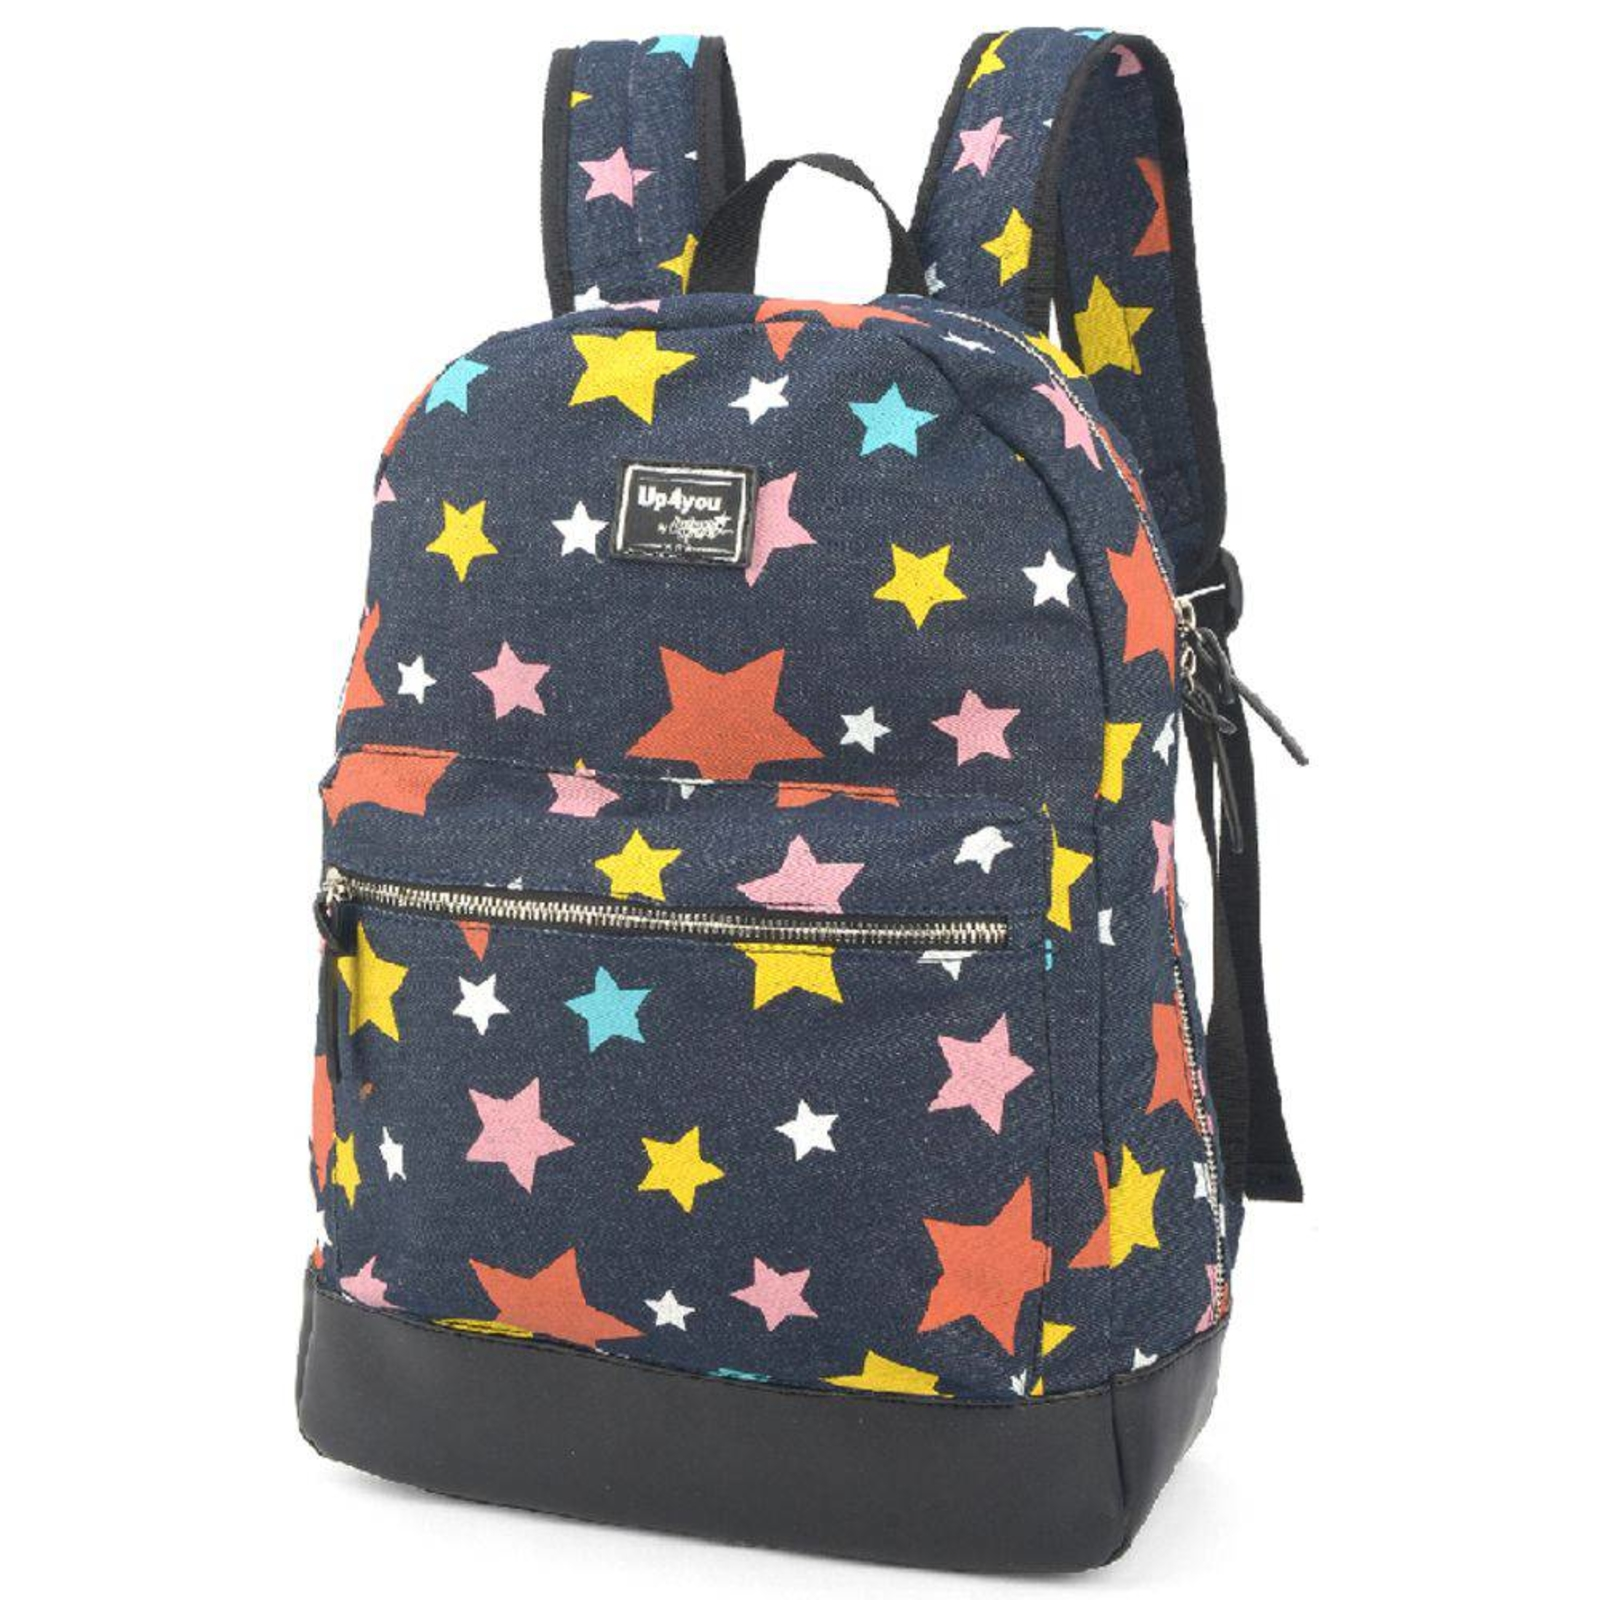 Mochilas Up4you com Ofertas Incríveis no